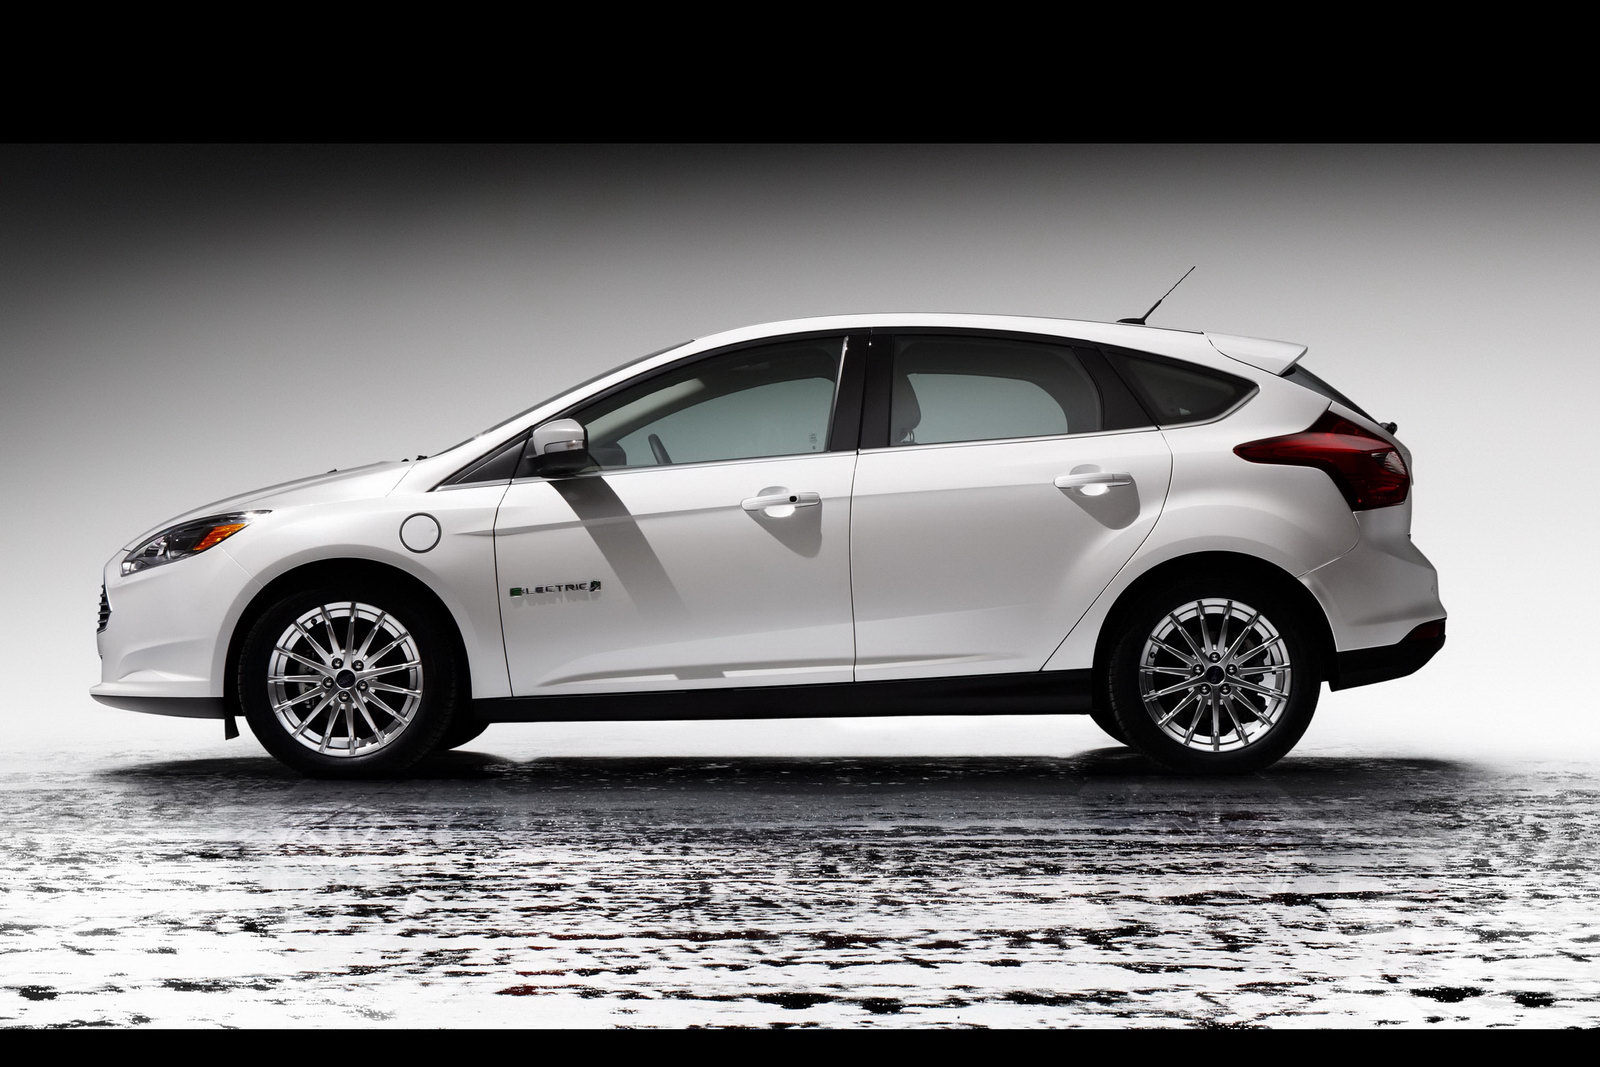 Ad H2R debutto per la Ford Focus Electric